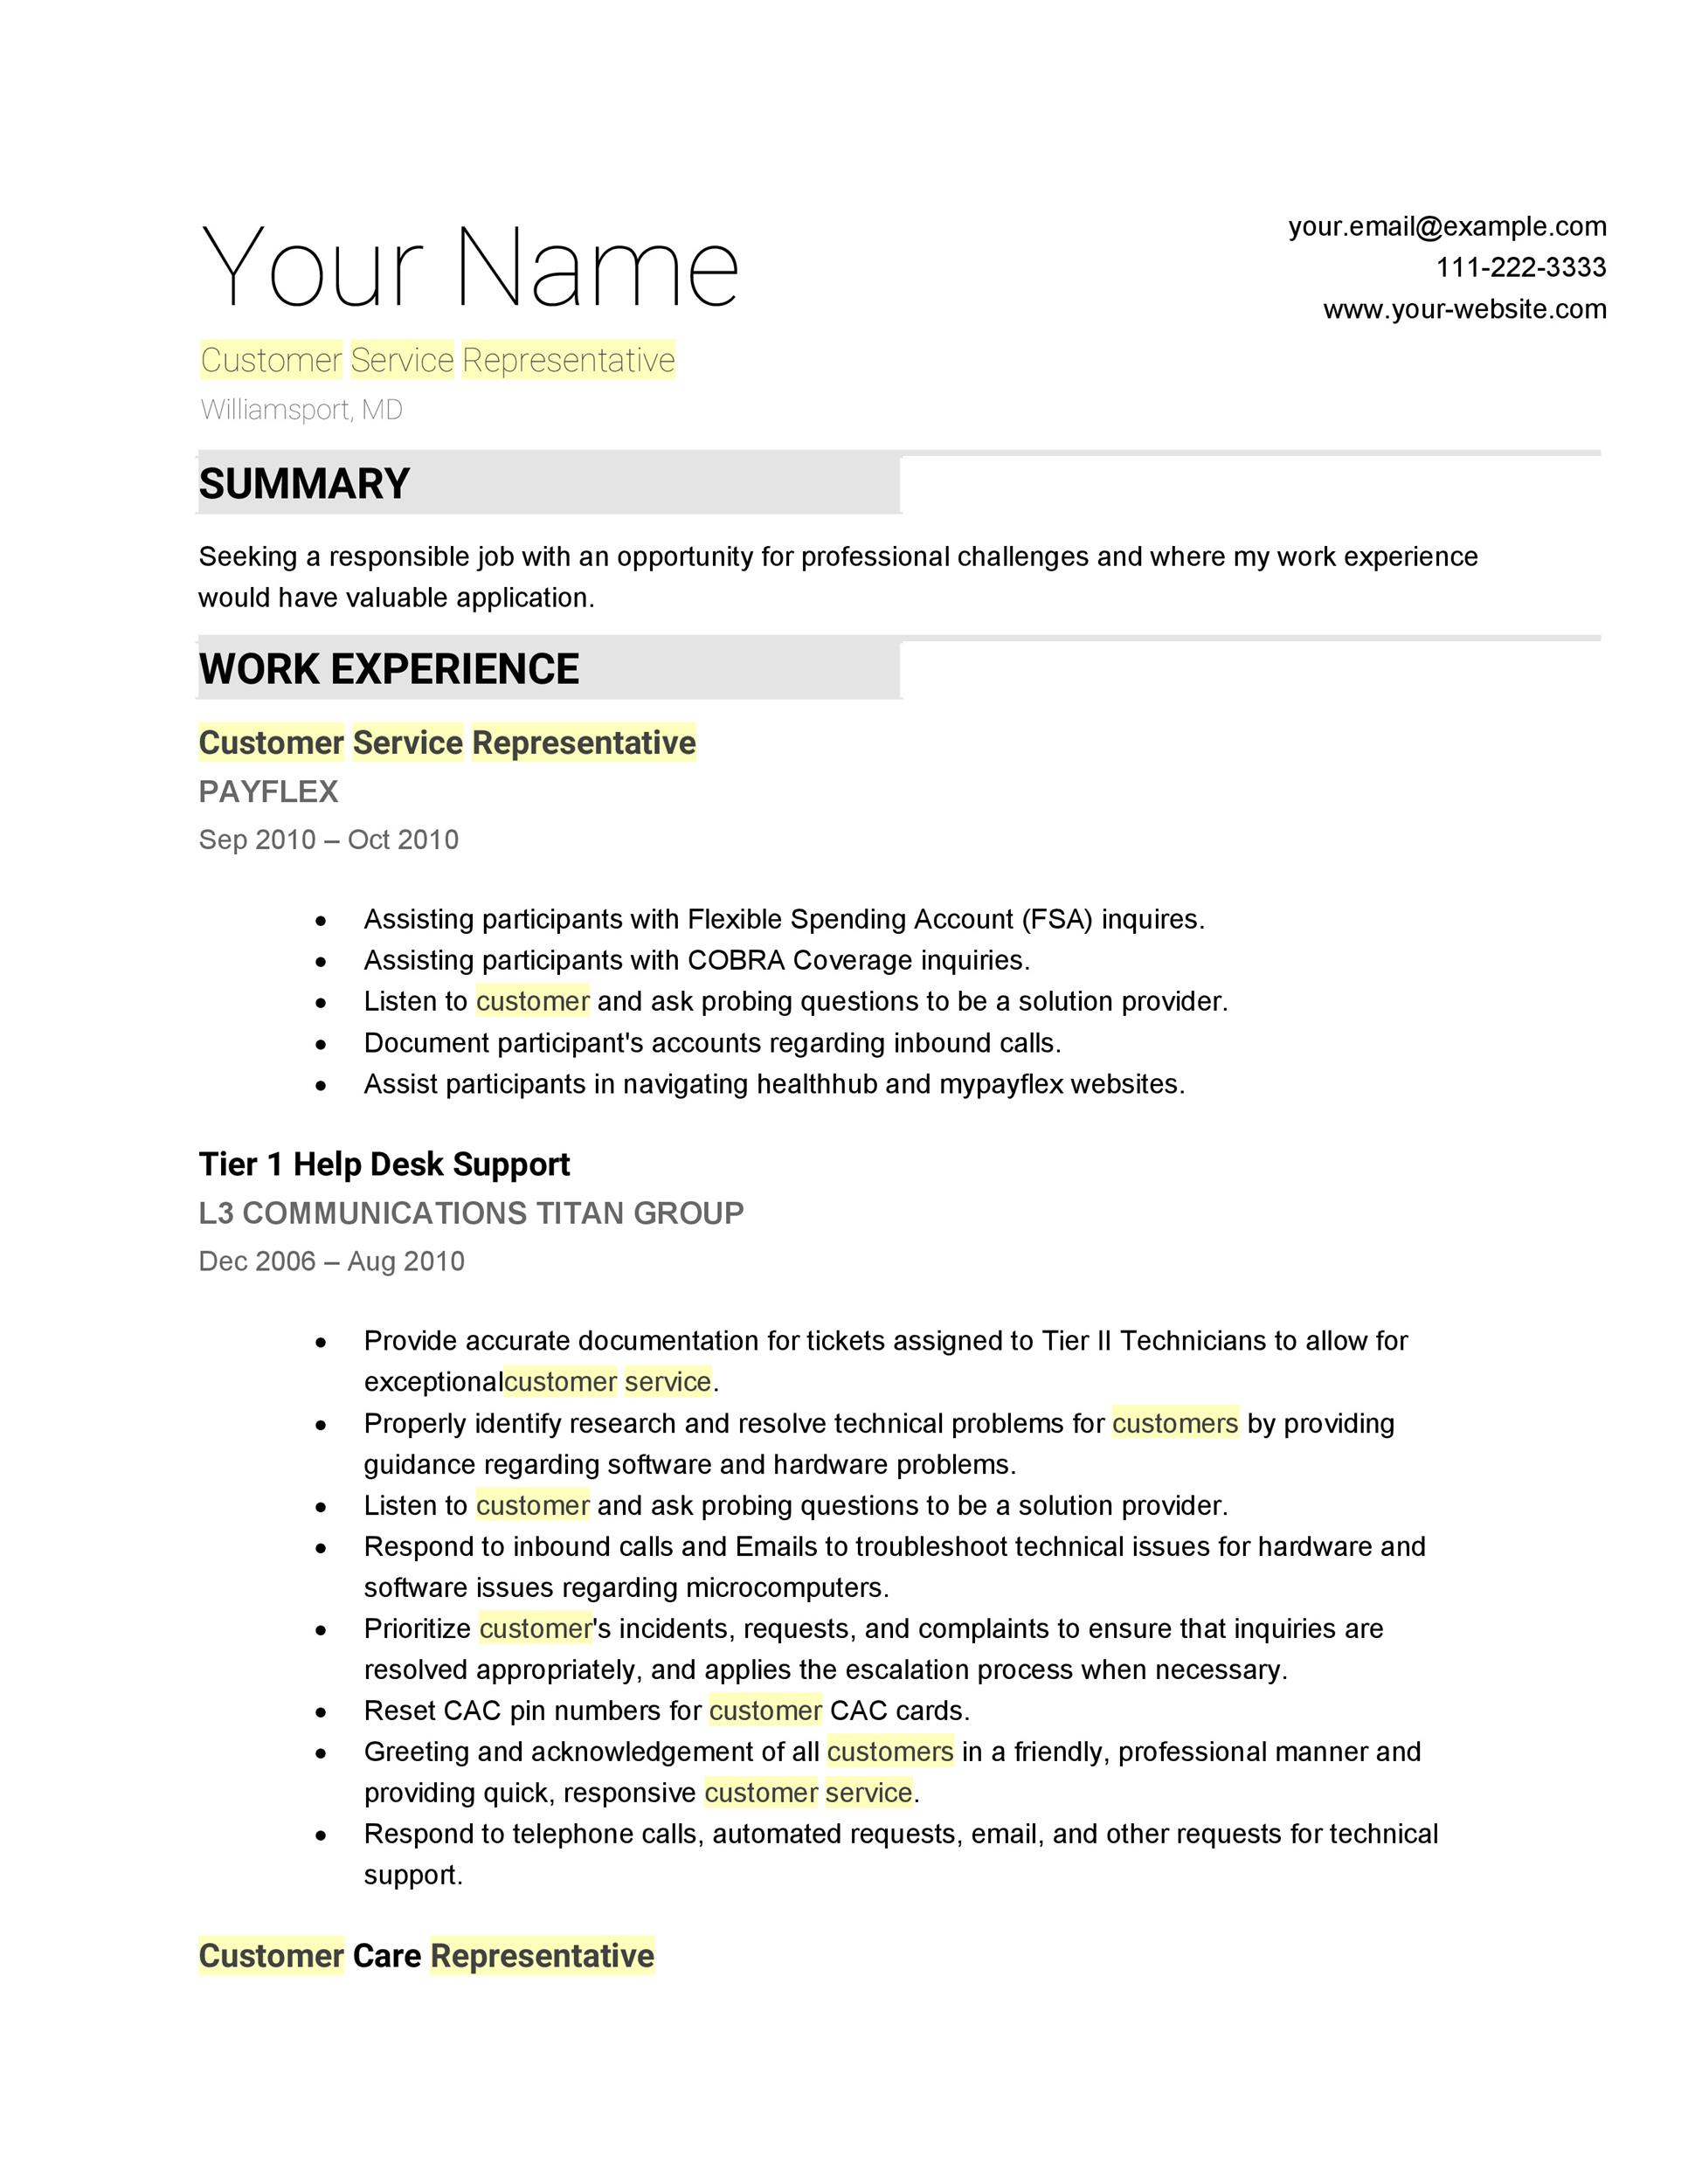 customer service resume templates - Template Resumes